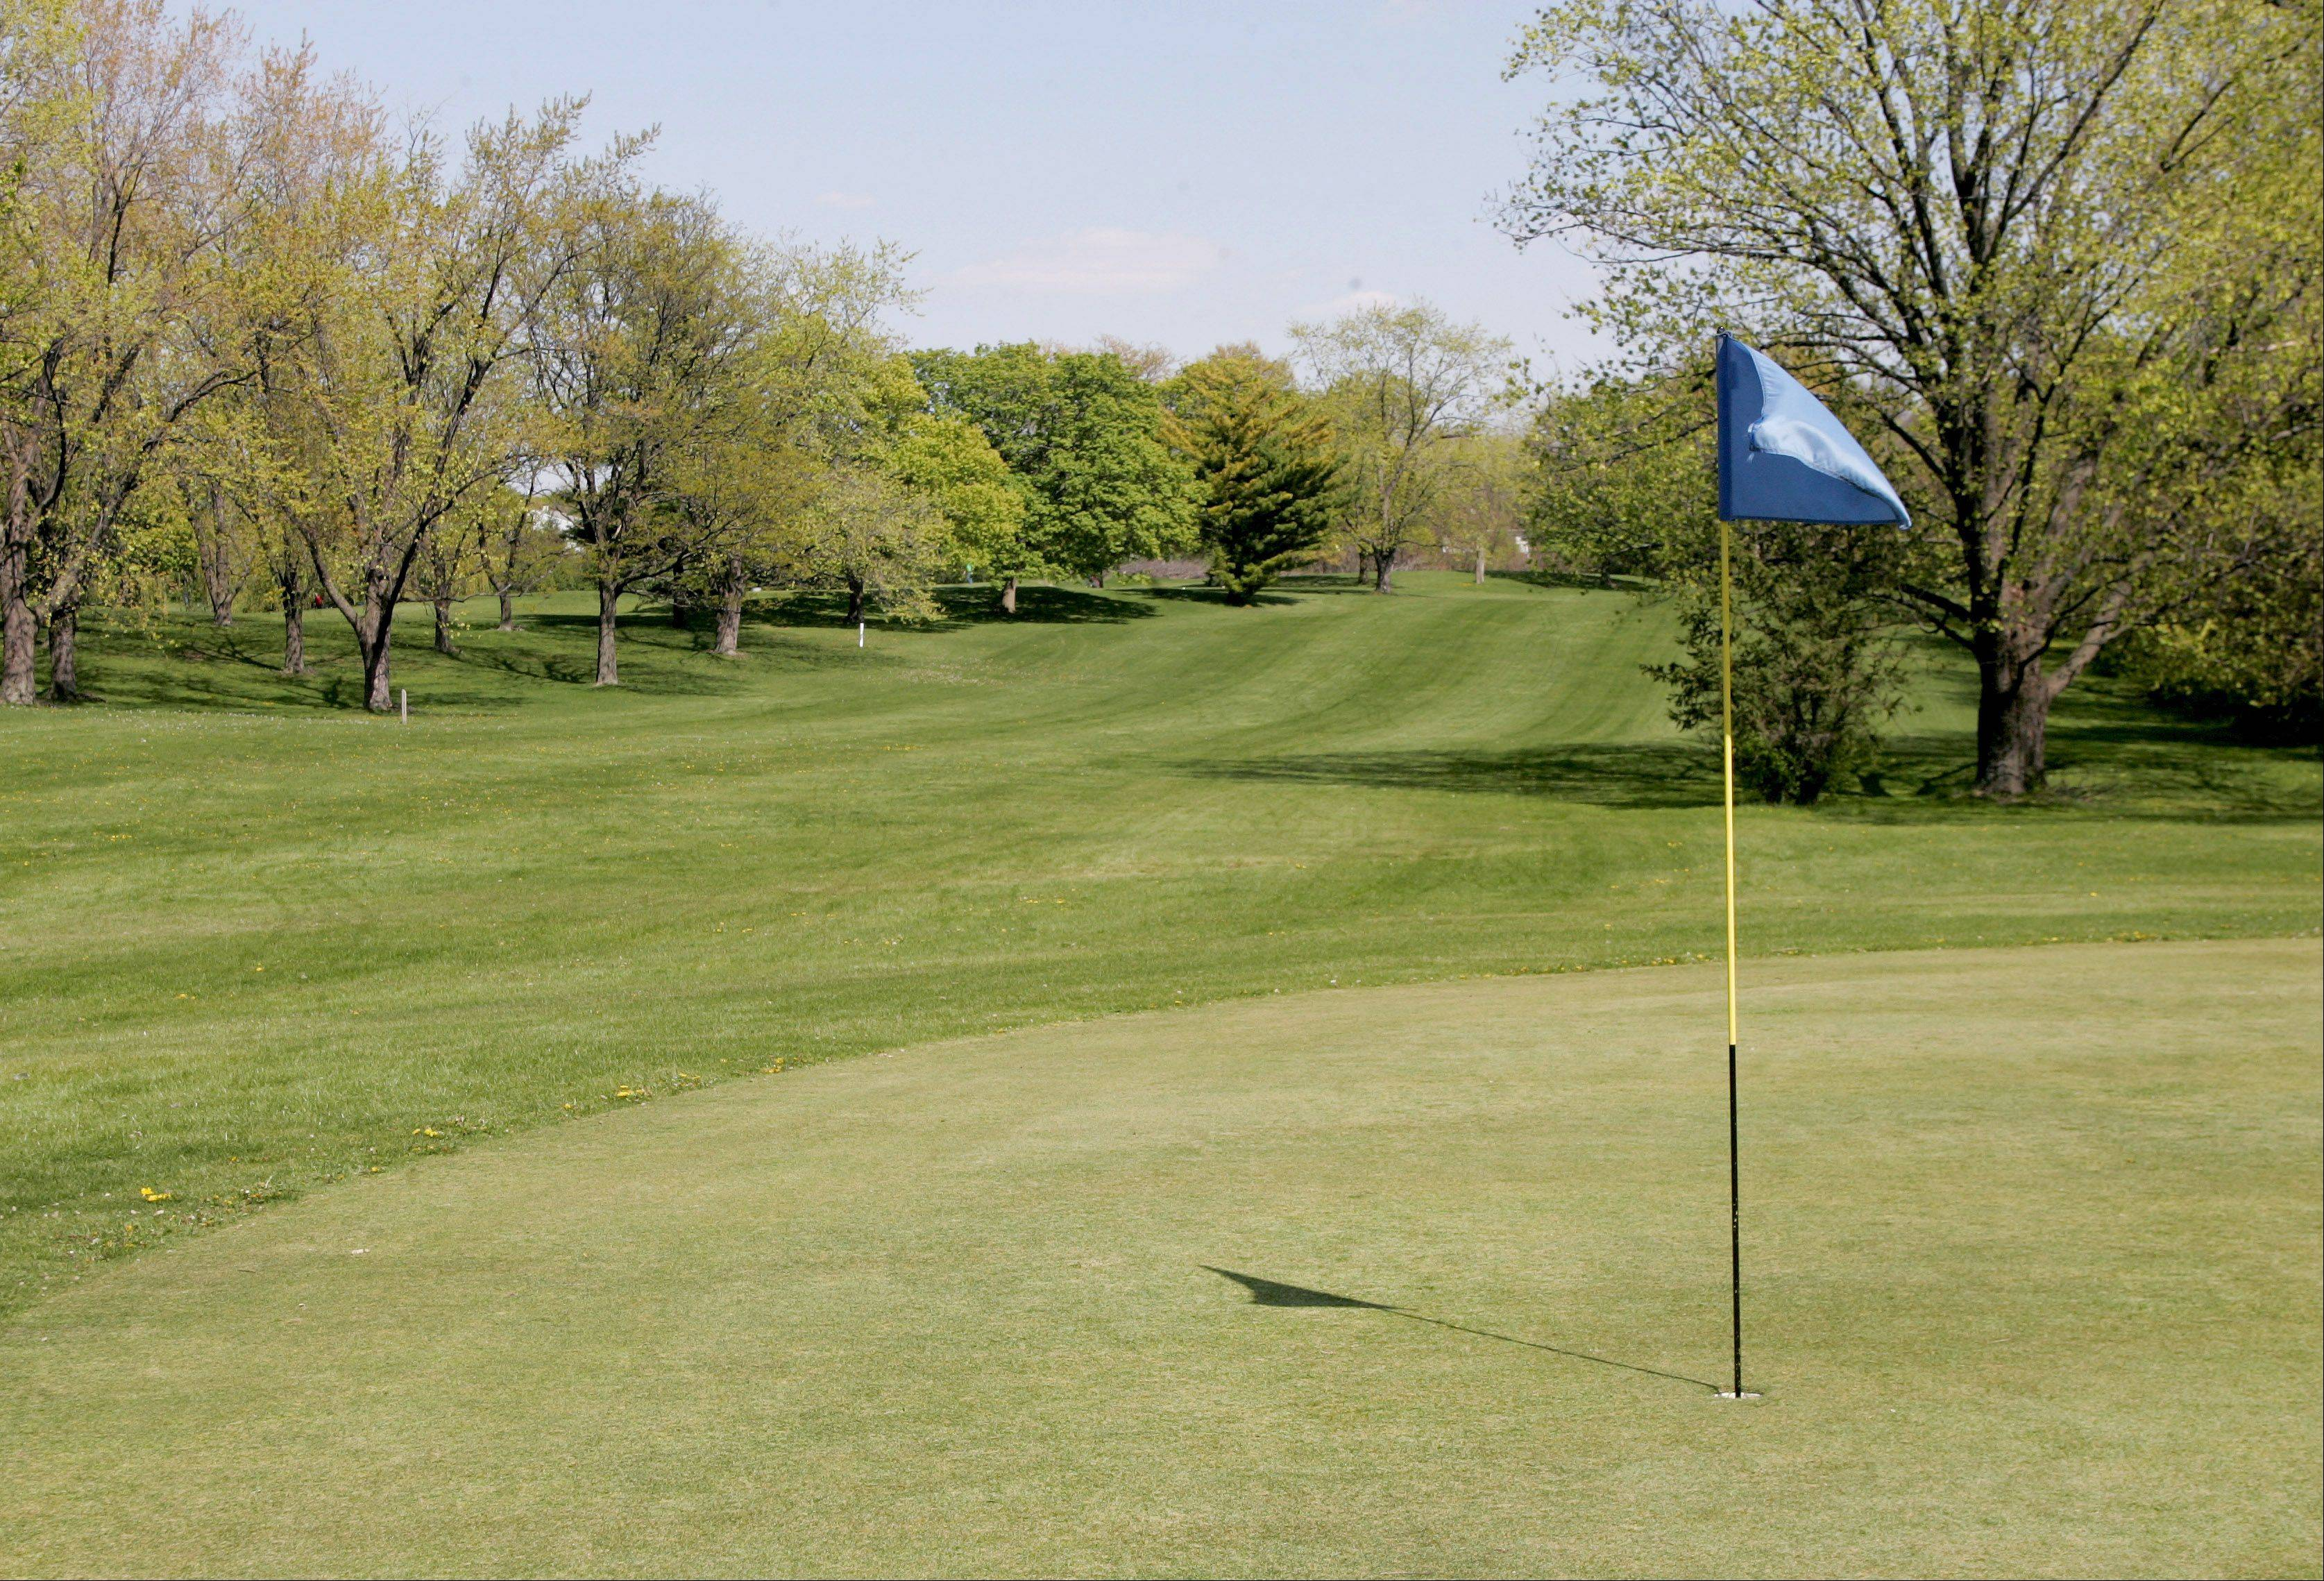 A company hoping to transform Ken-Loch Golf Links near Lombard into a multifamily residential development is working to combat criticism about the project.